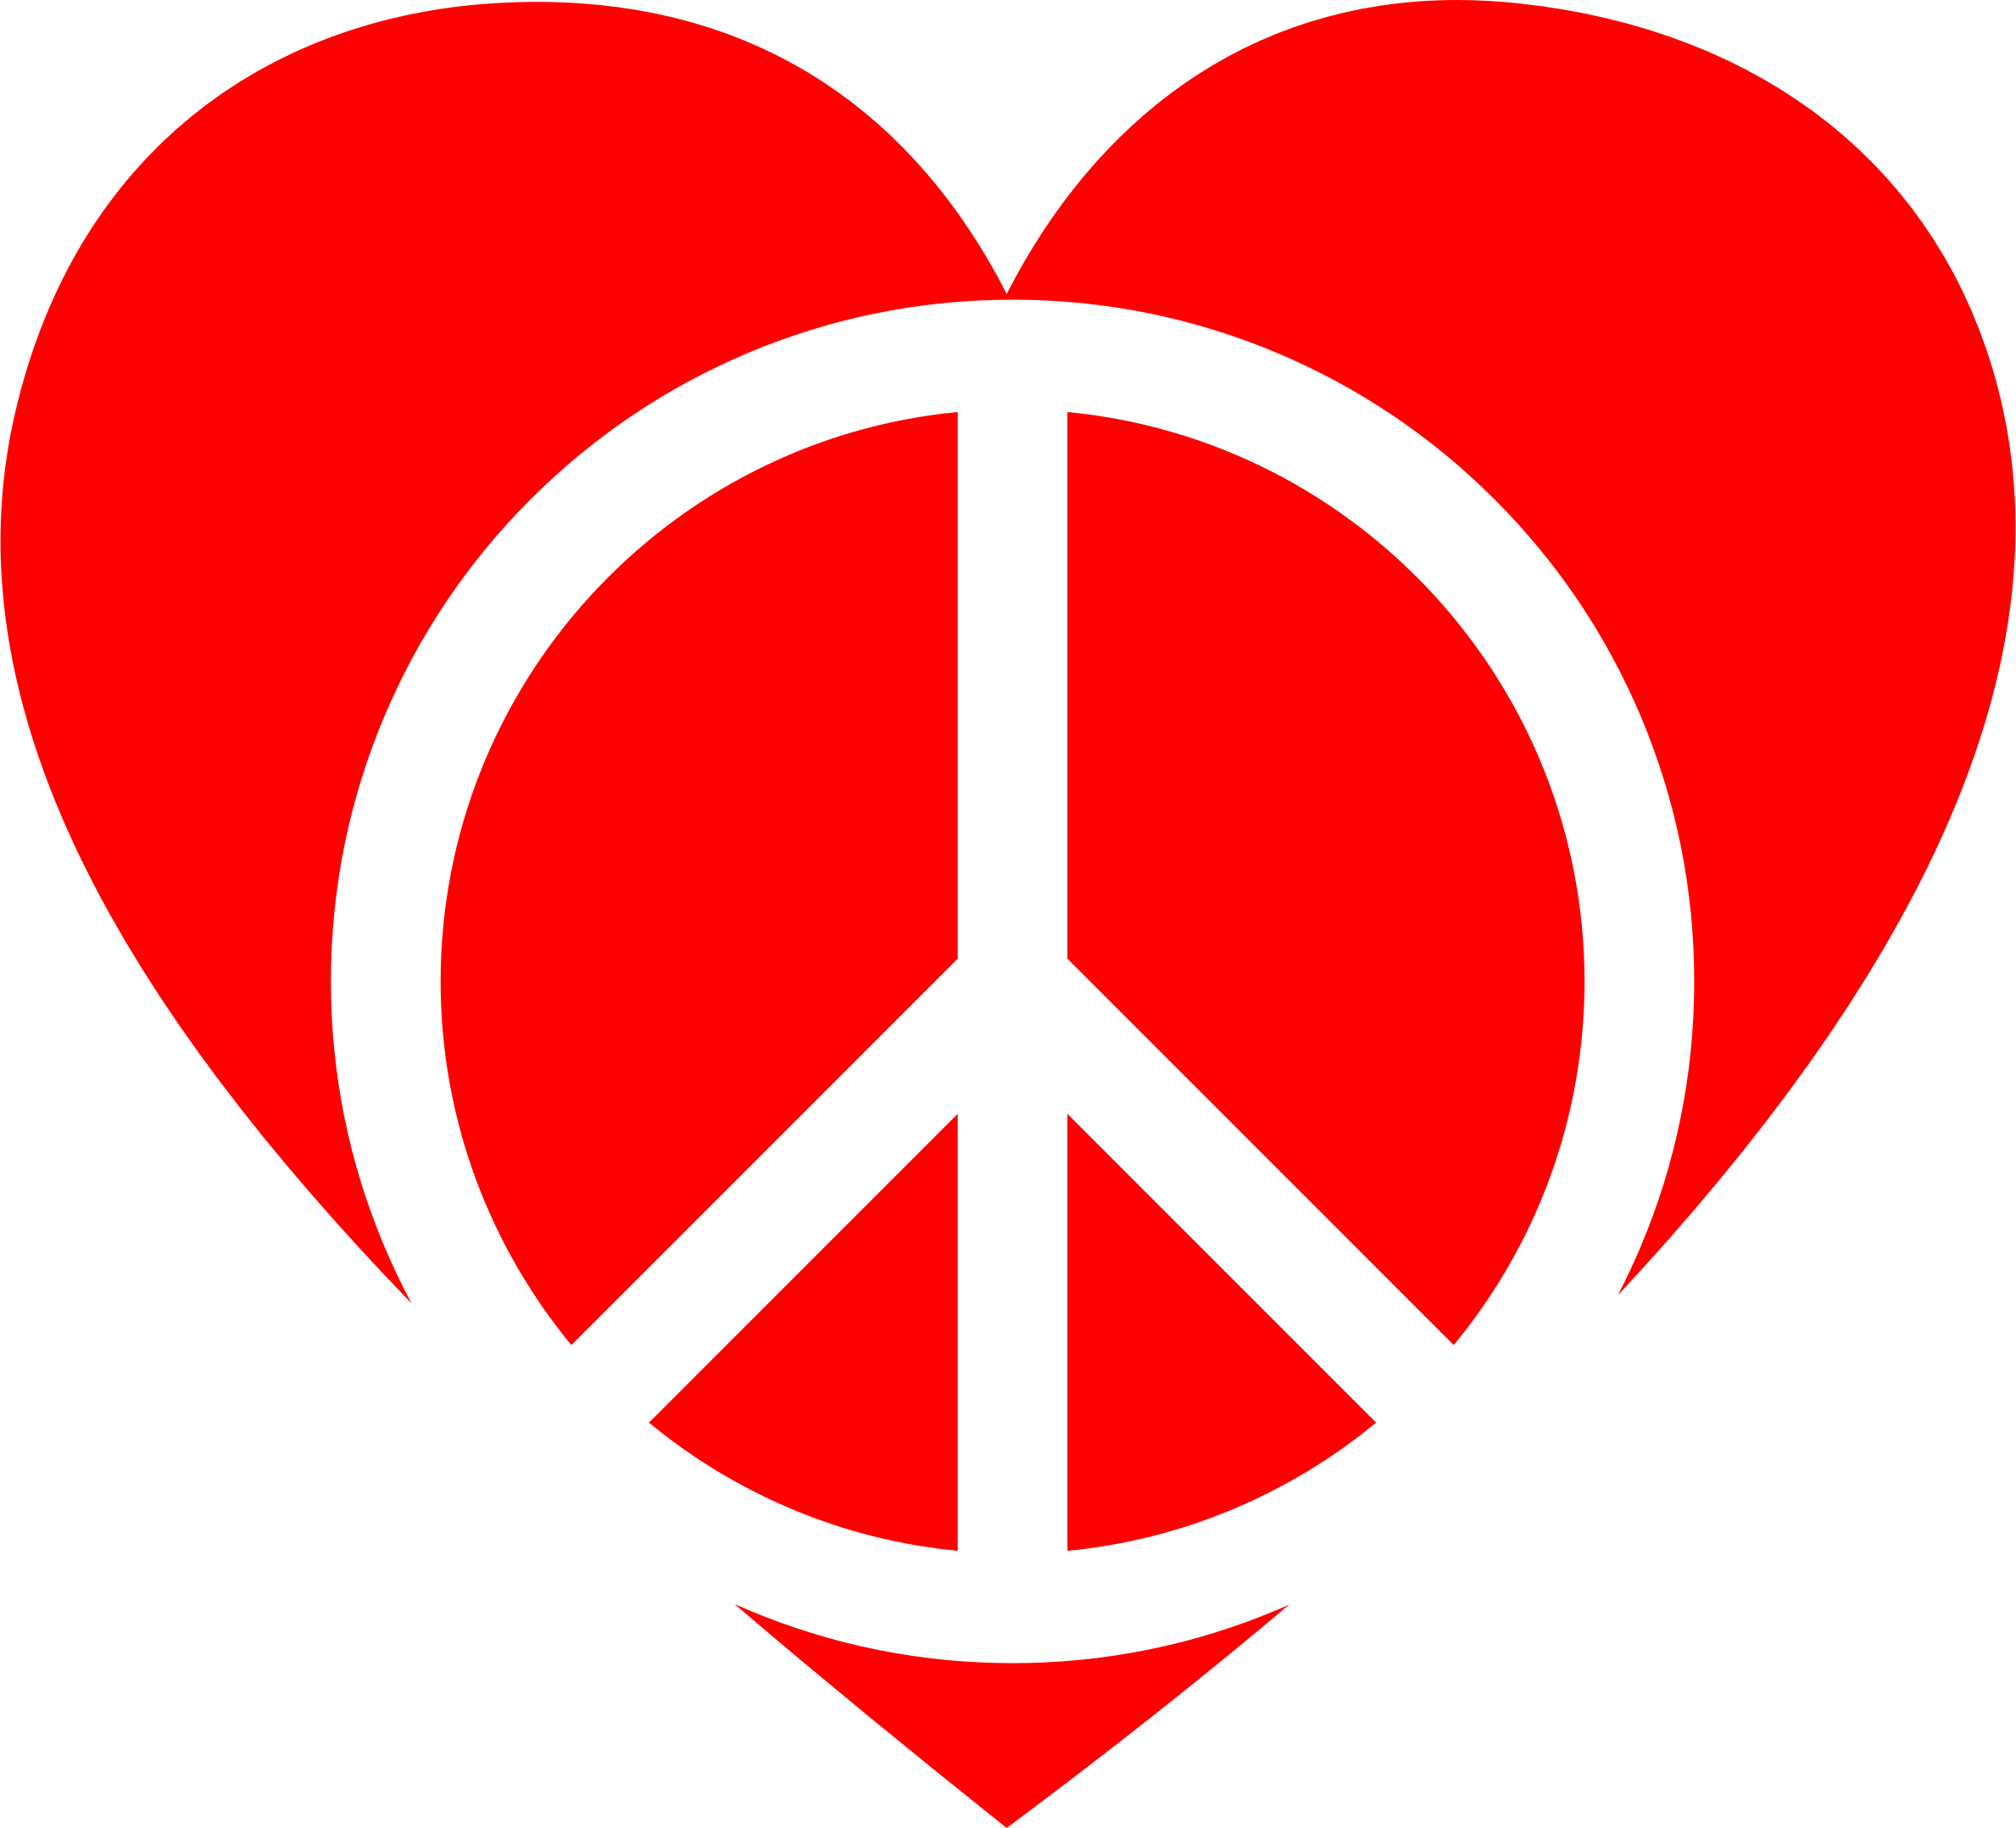 Red Peace Heart by GDJ